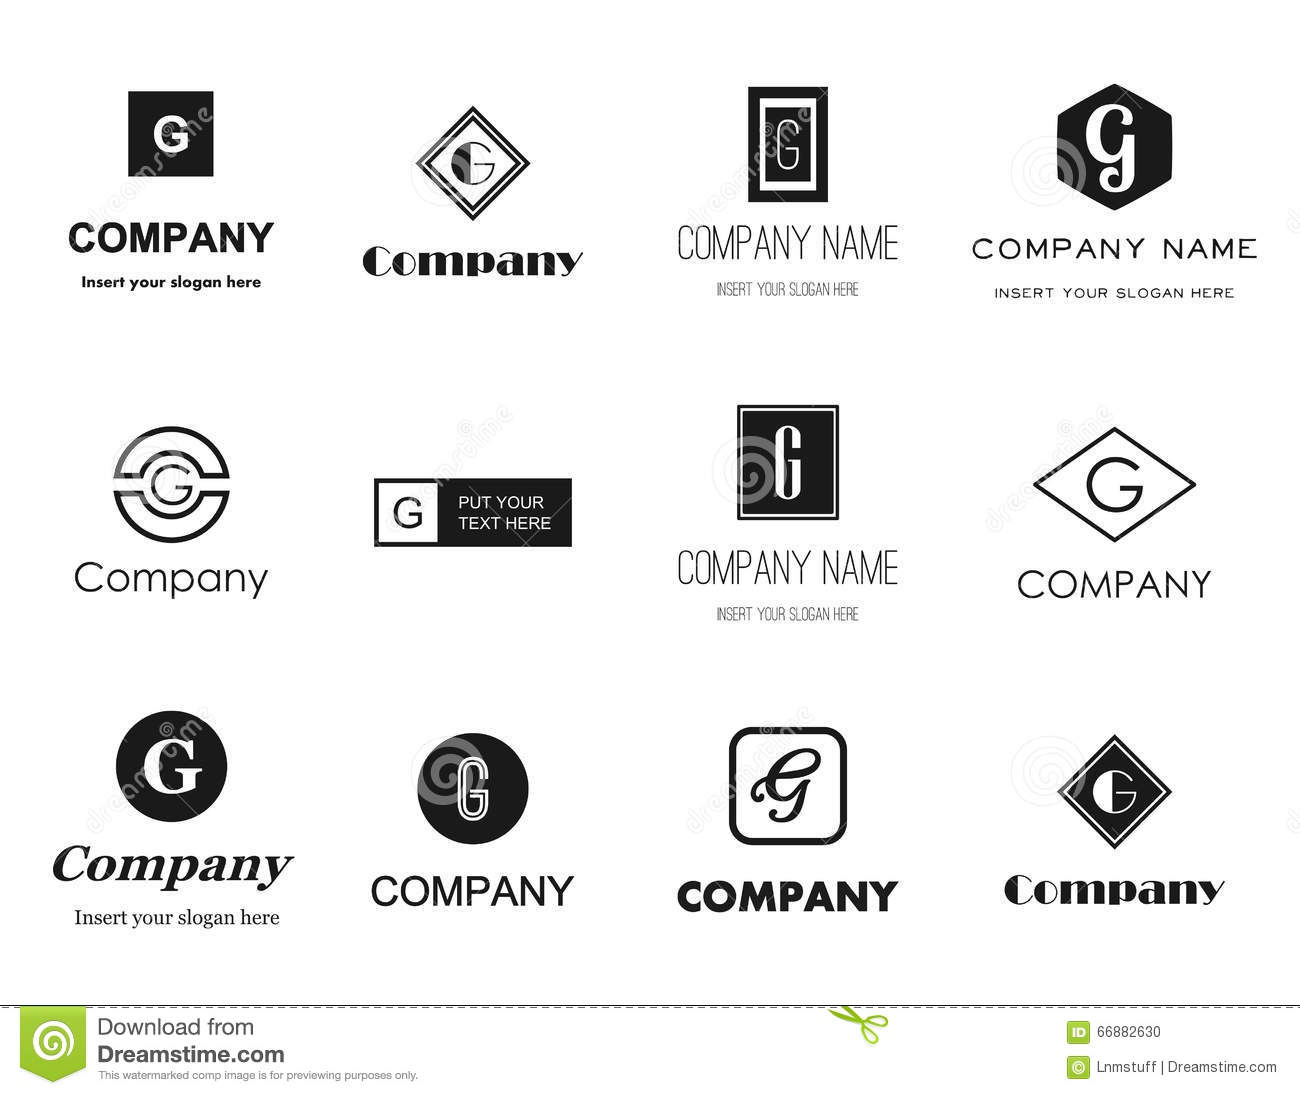 6d4329792d7b Vector set of flat style monochromatic letter G (gee) logos - elegant,  modern and simple logo collection. Editable eps file available.